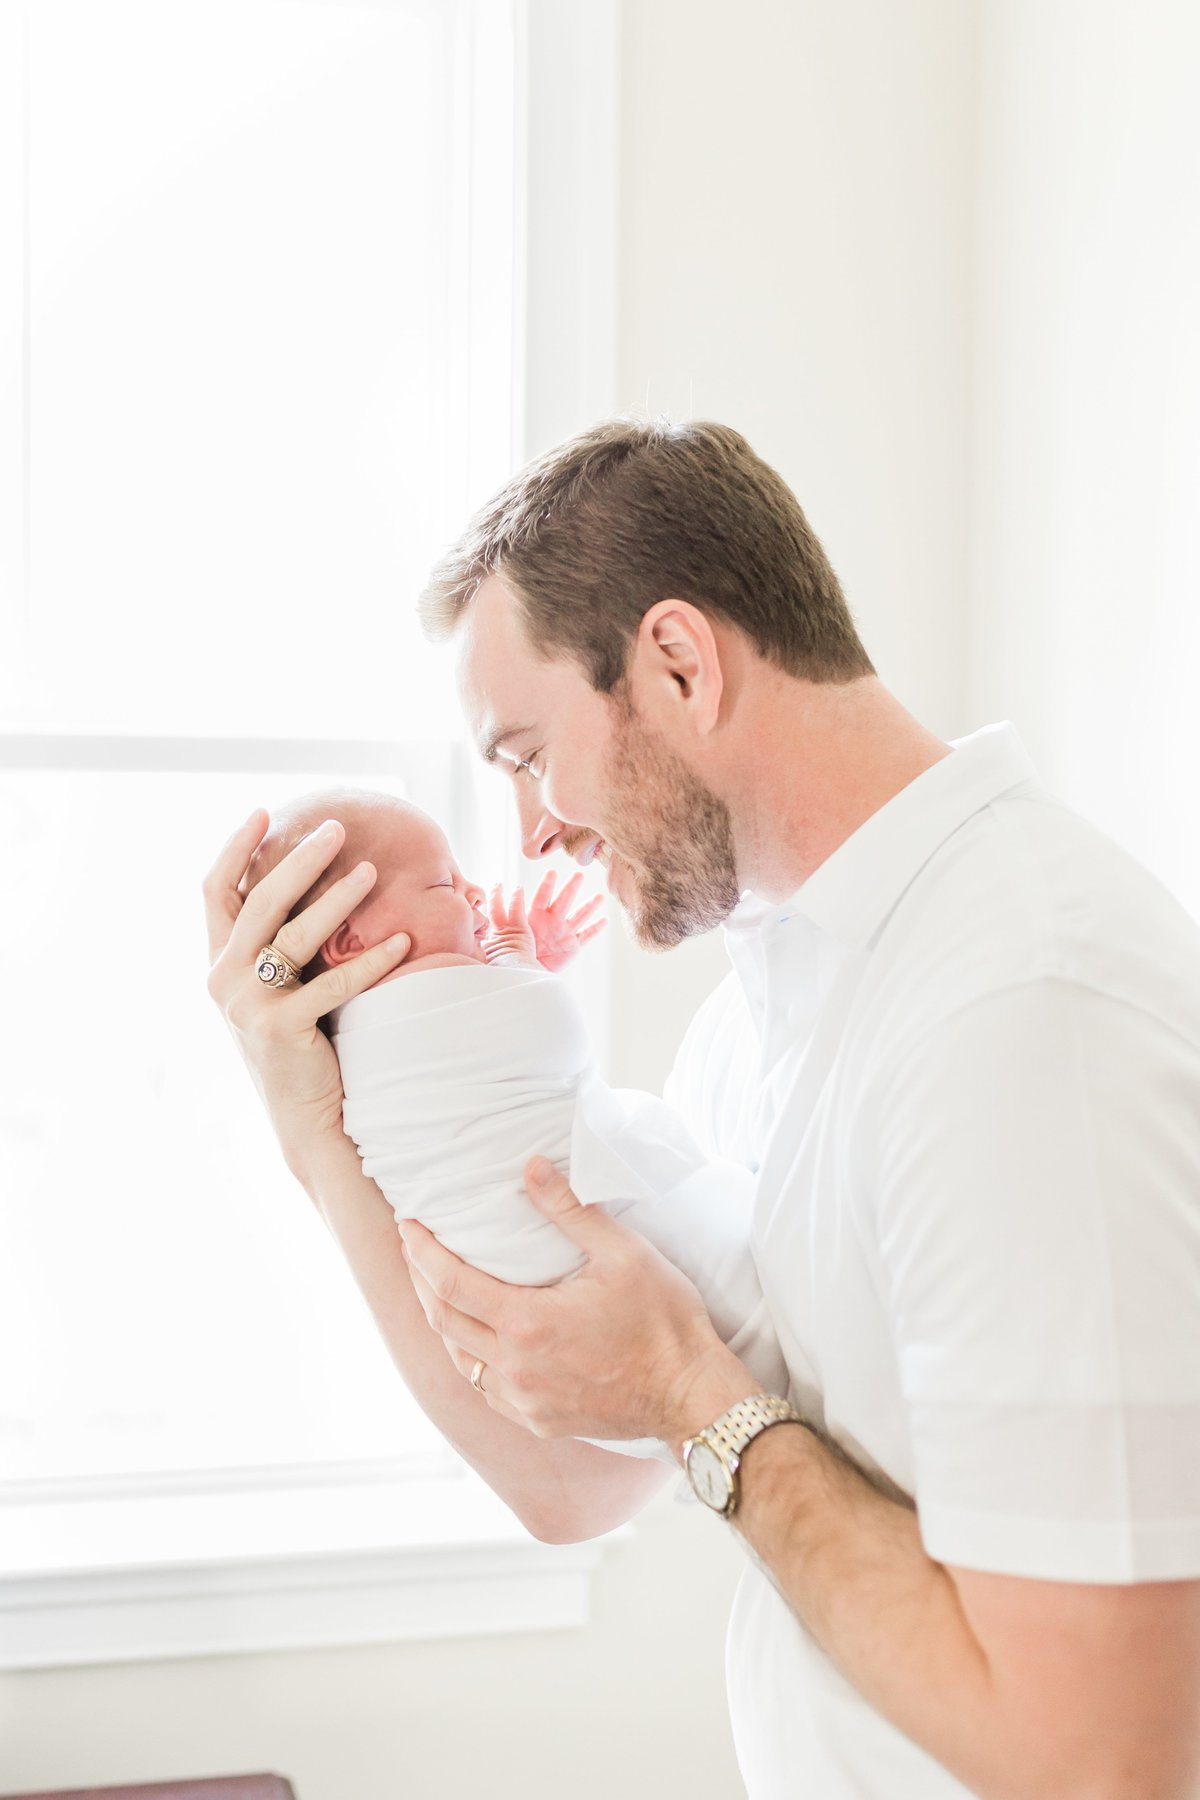 Charleston-Newborn-Photographer-Mount-Pleasant-Newborn-Photographer-Charleston-Lifestyle-Newborn-Photography-Lifestyle-Newborn-Session-43